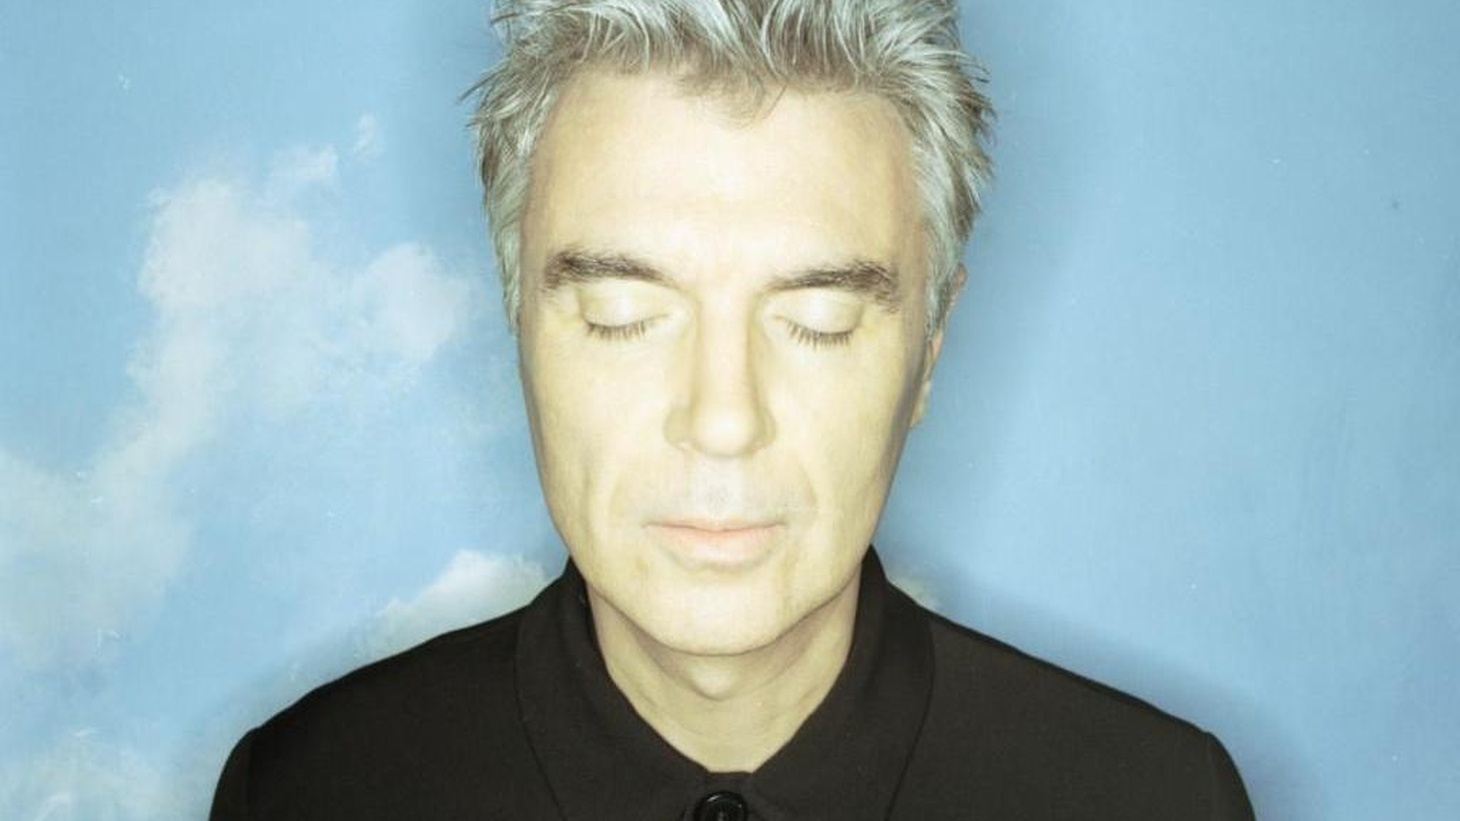 """David Byrne and Fatboy Slim explore the life of Imelda Marcos through clubby, danceable tracks on their latest collaboration. The two-CD set features an amazing array of artists, including Sharon Jones, Florence Welch of Florence & The Machine, Tori Amos and, for Today's Top Tune, it's Sia, handling the vocals on """"Never So Big."""""""